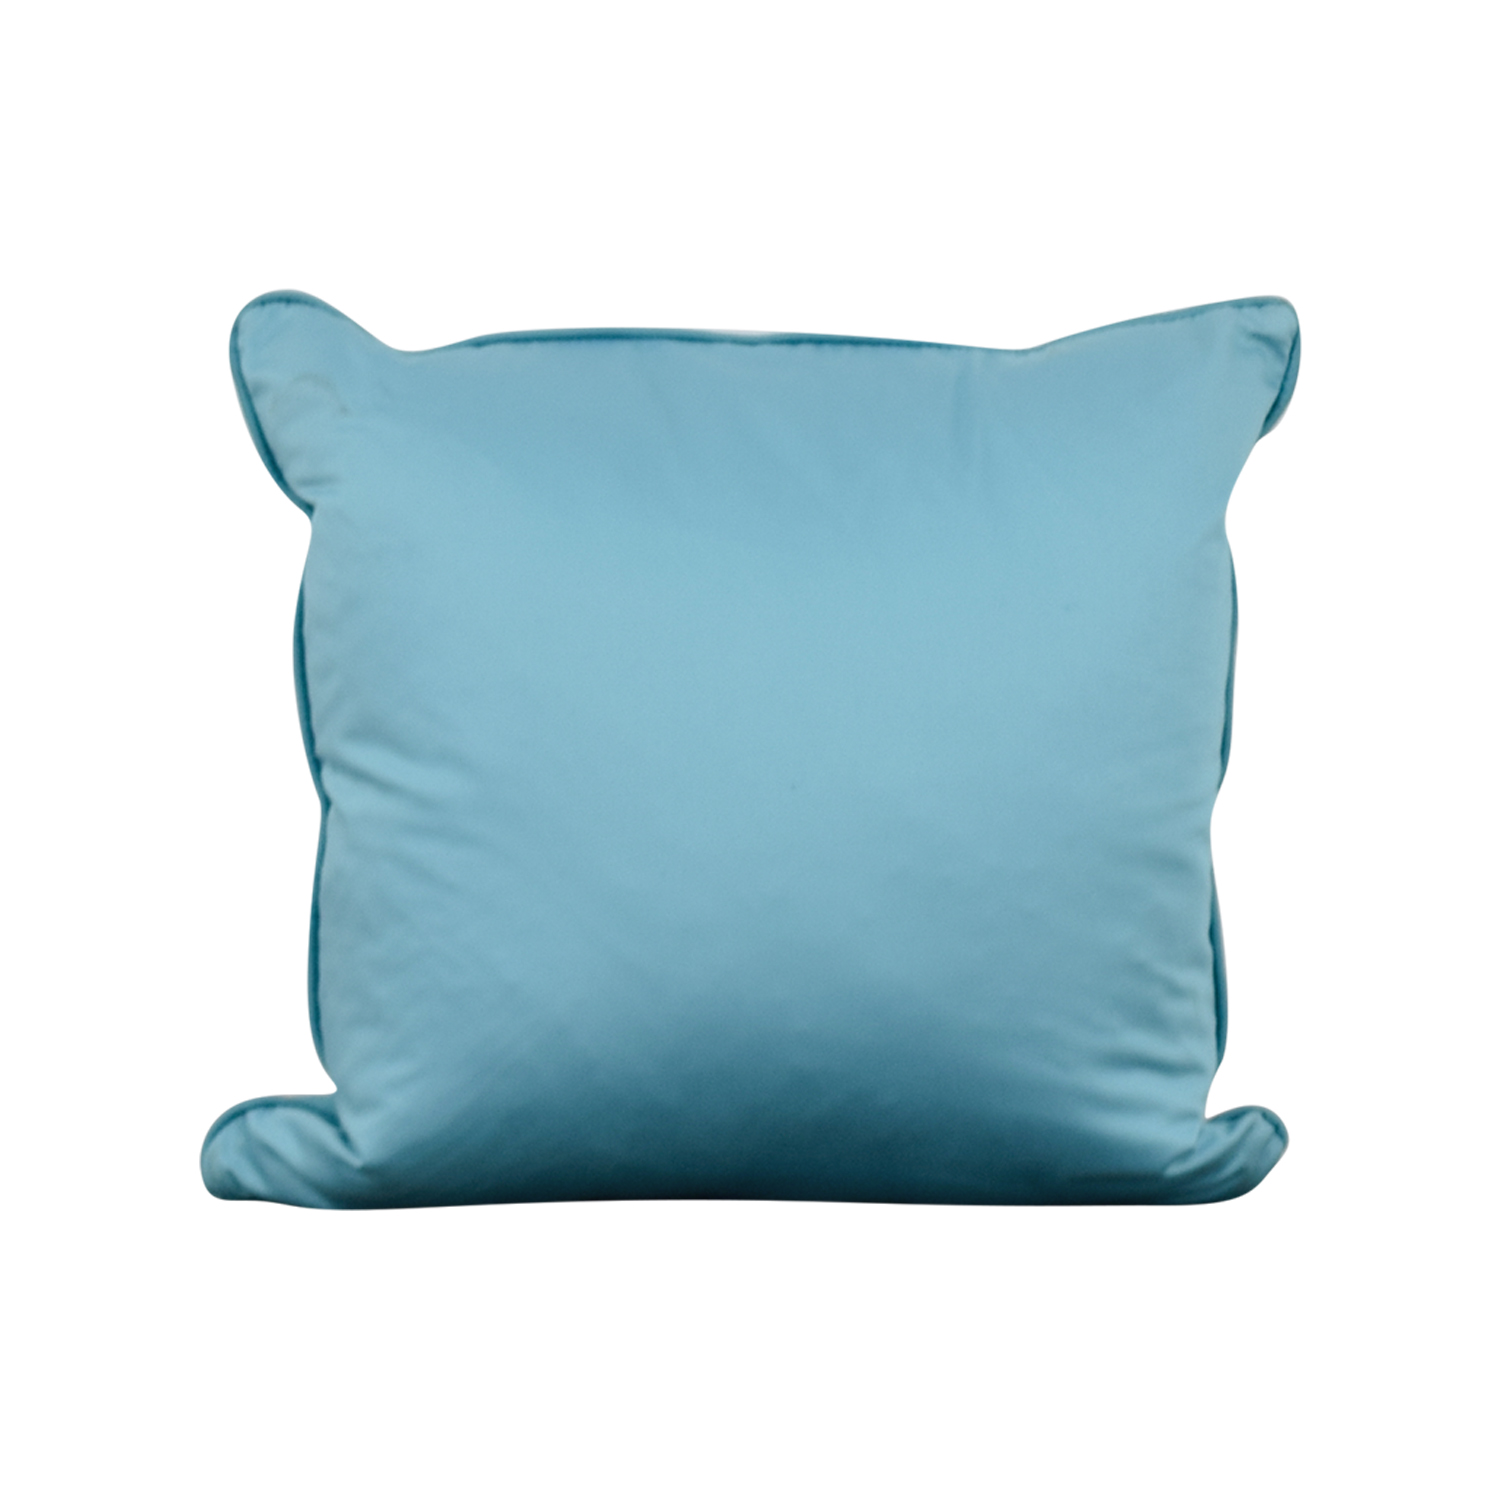 Society Social Society Social Teal Pillow